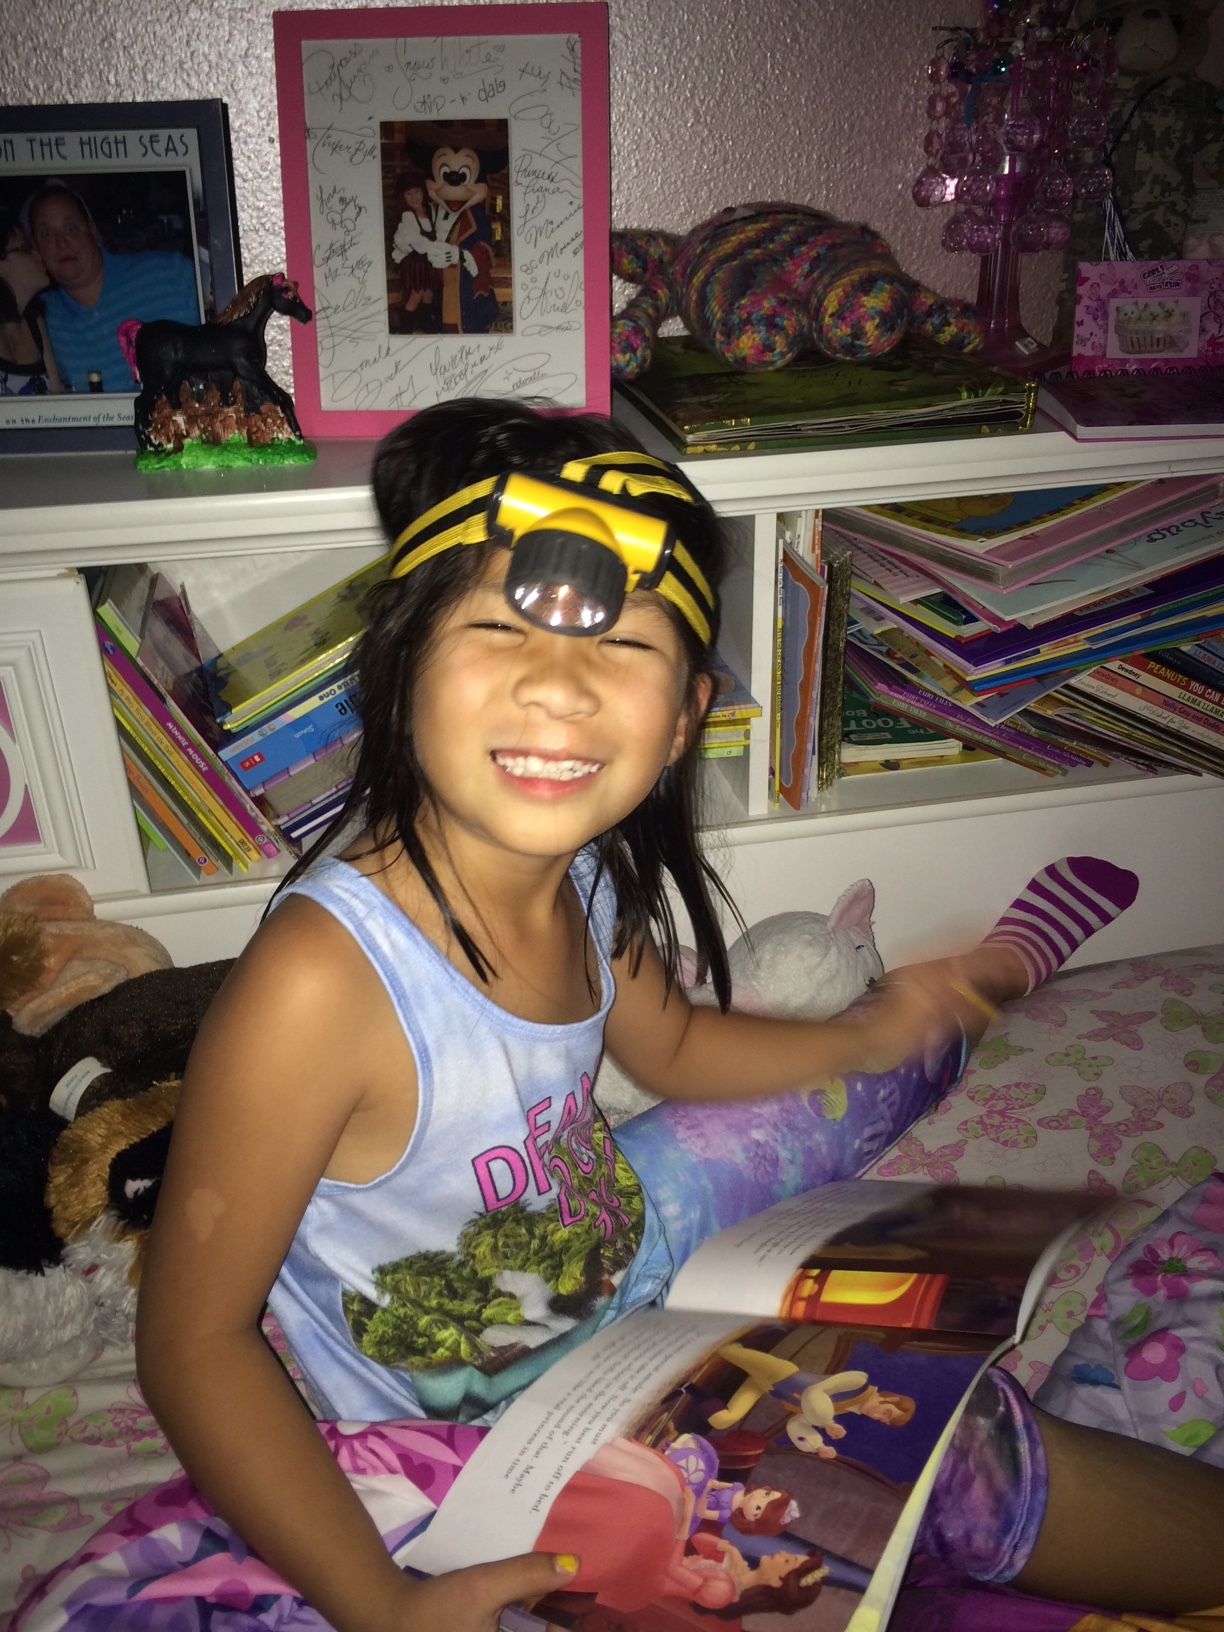 Busted!  I walked in on Ladybug reading books after lights-out with her minor's headlight.  How does one reprimand such cuteness??